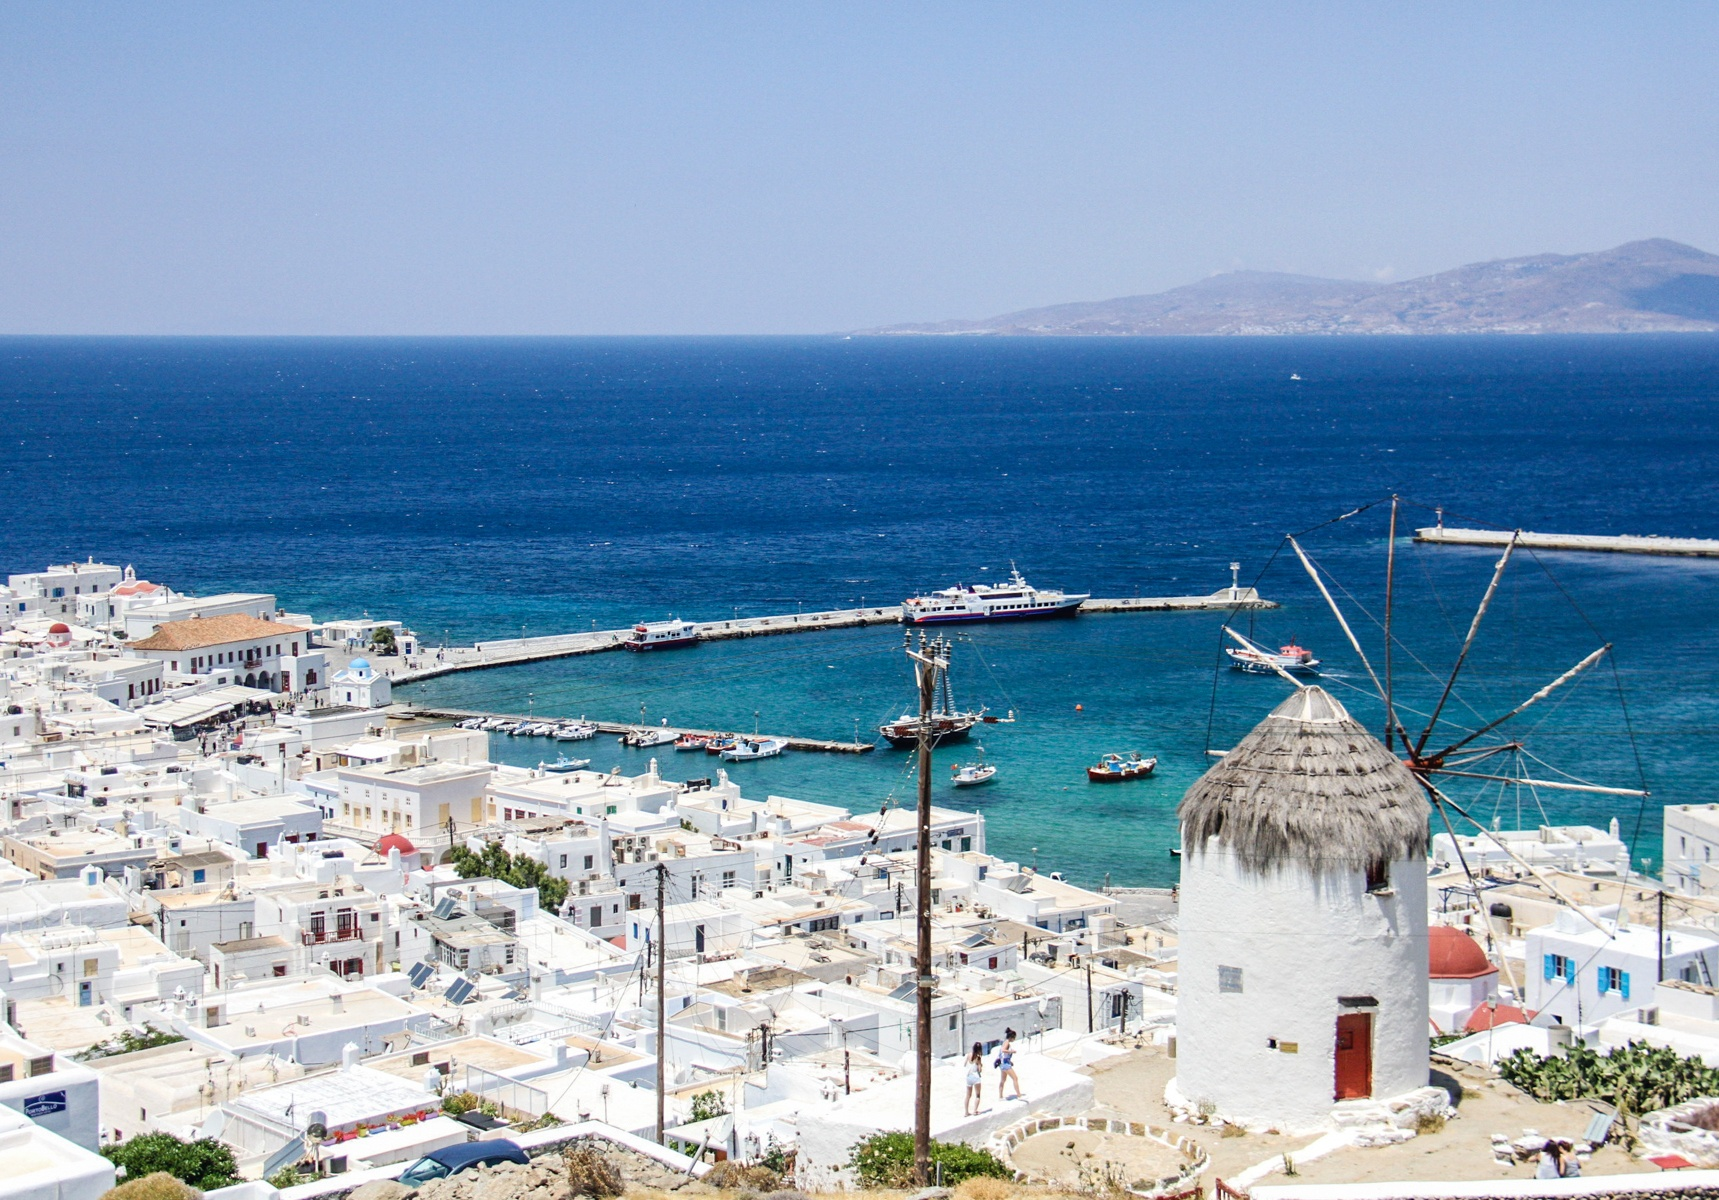 Best photography spots in Mykonos